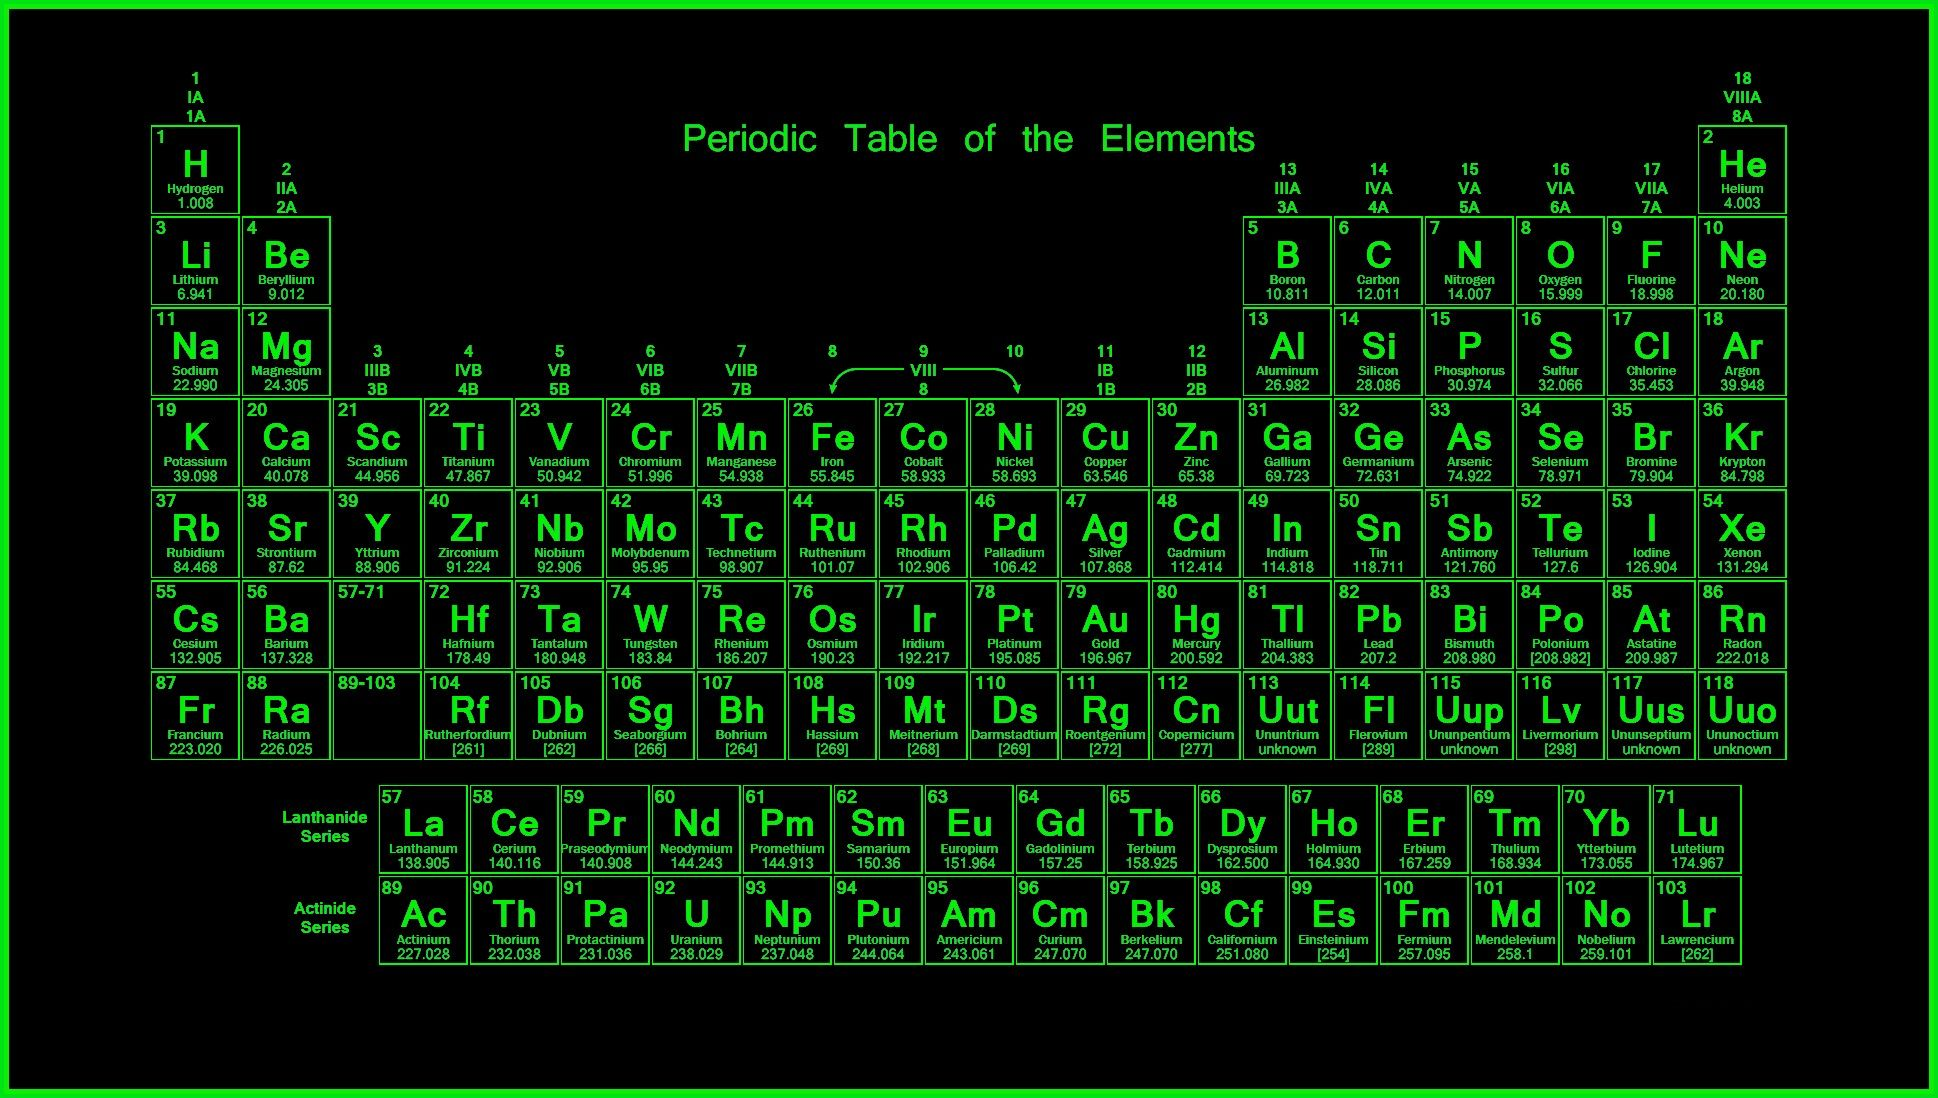 Periodic table wallpaper periodic table wallpaper pinterest flor periodic table wallpaper flortabla peridicaimgenes libresplantillas urtaz Gallery